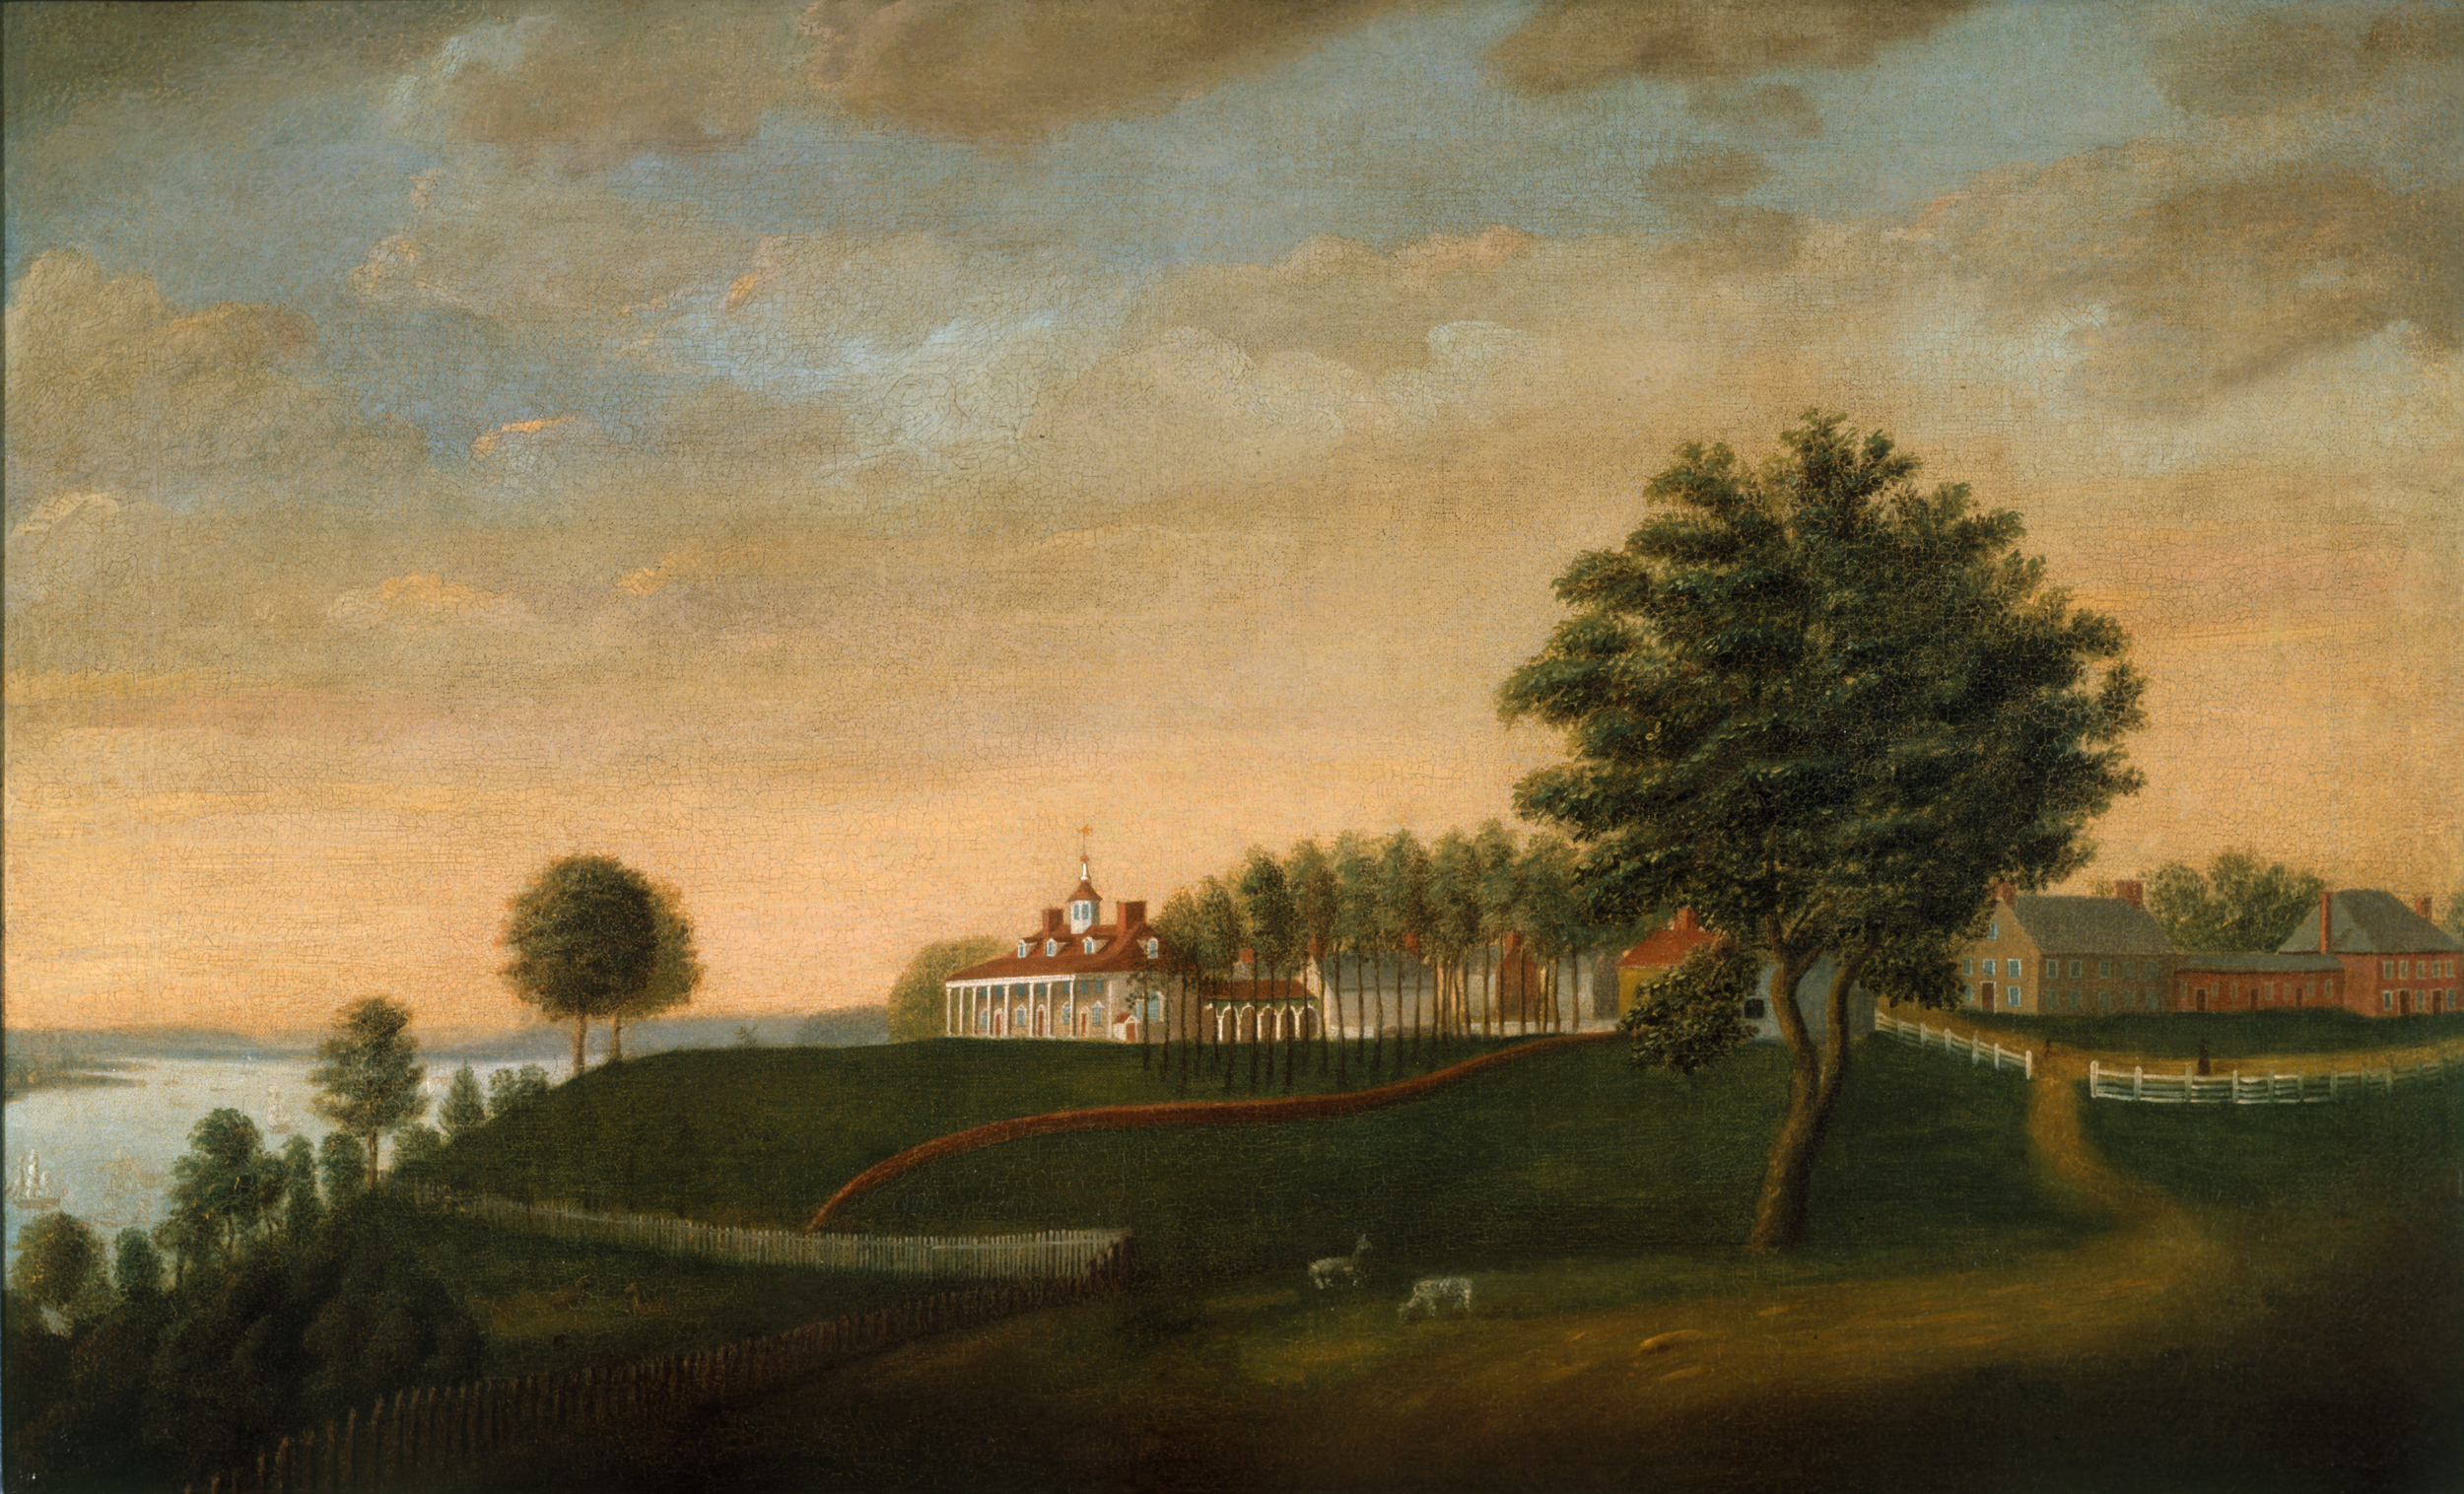 The East Front of Mount Vernon by Edward Savage (American, 1761 - 1817), c. 1787-1792, oil on canvas, H-2445/A, Mount Vernon Ladies' Association, Bequest of Helen W. Thompson.